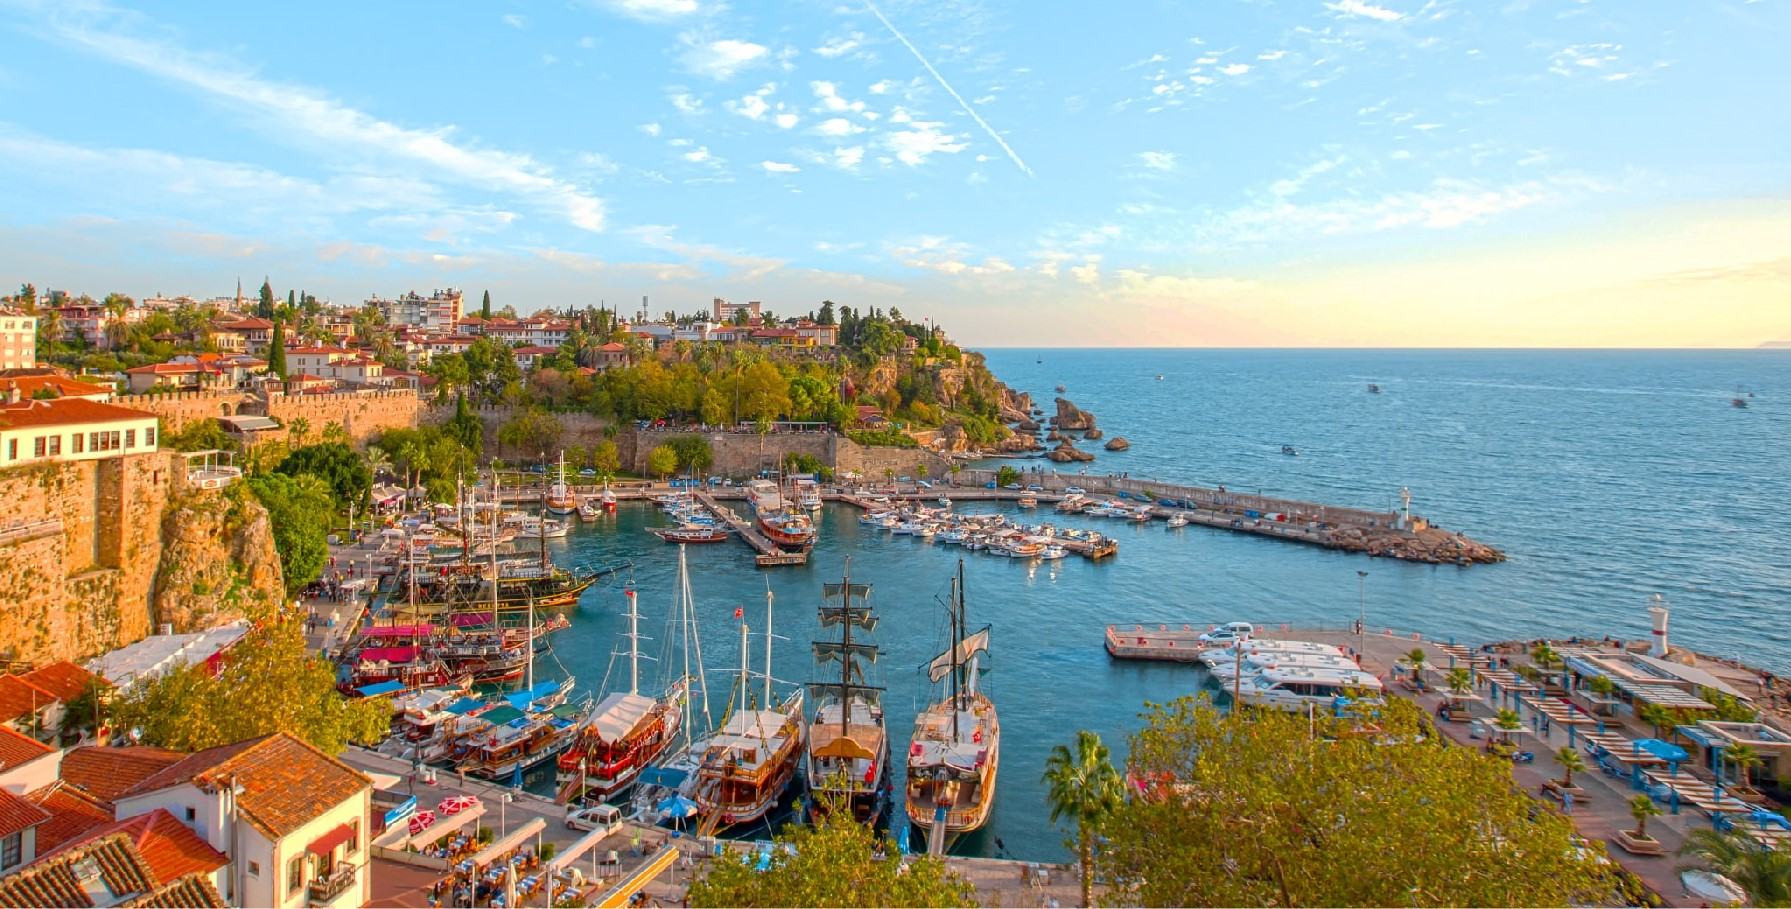 Things to do in your Antalya trip